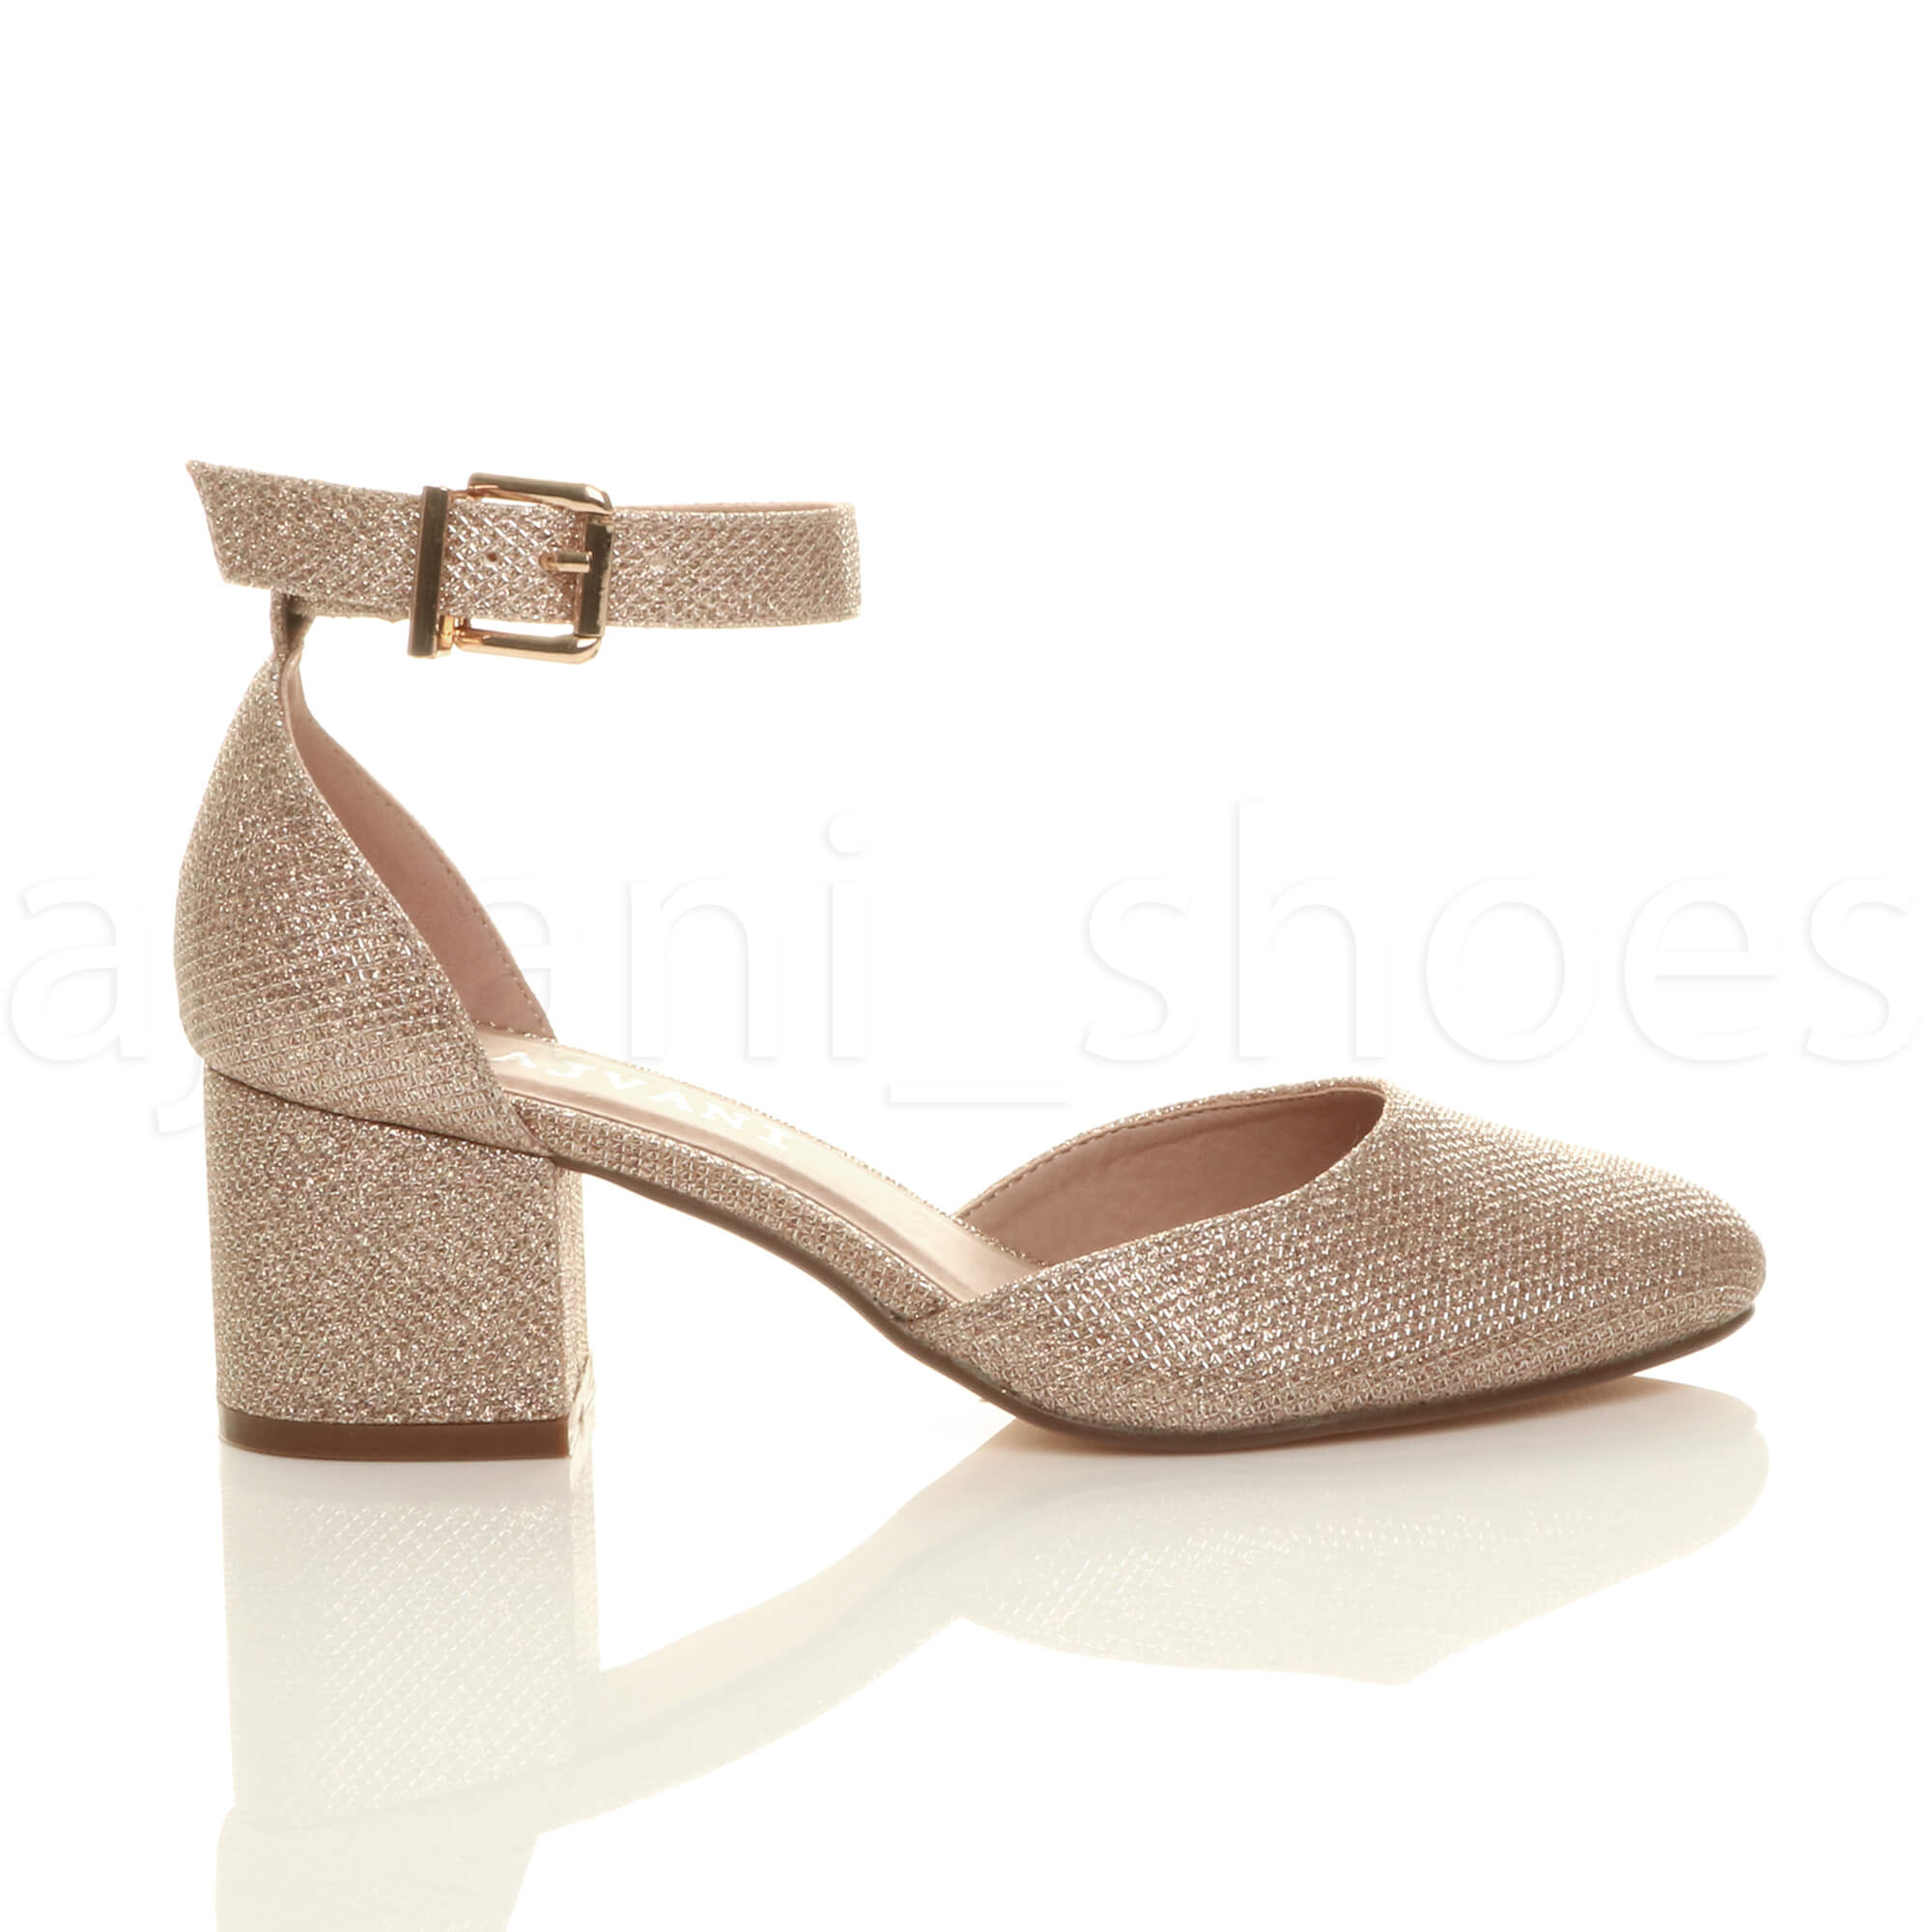 WOMENS-LADIES-LOW-MID-BLOCK-HEEL-ANKLE-STRAP-MARY-JANE-COURT-SHOES-SANDALS-SIZE thumbnail 155